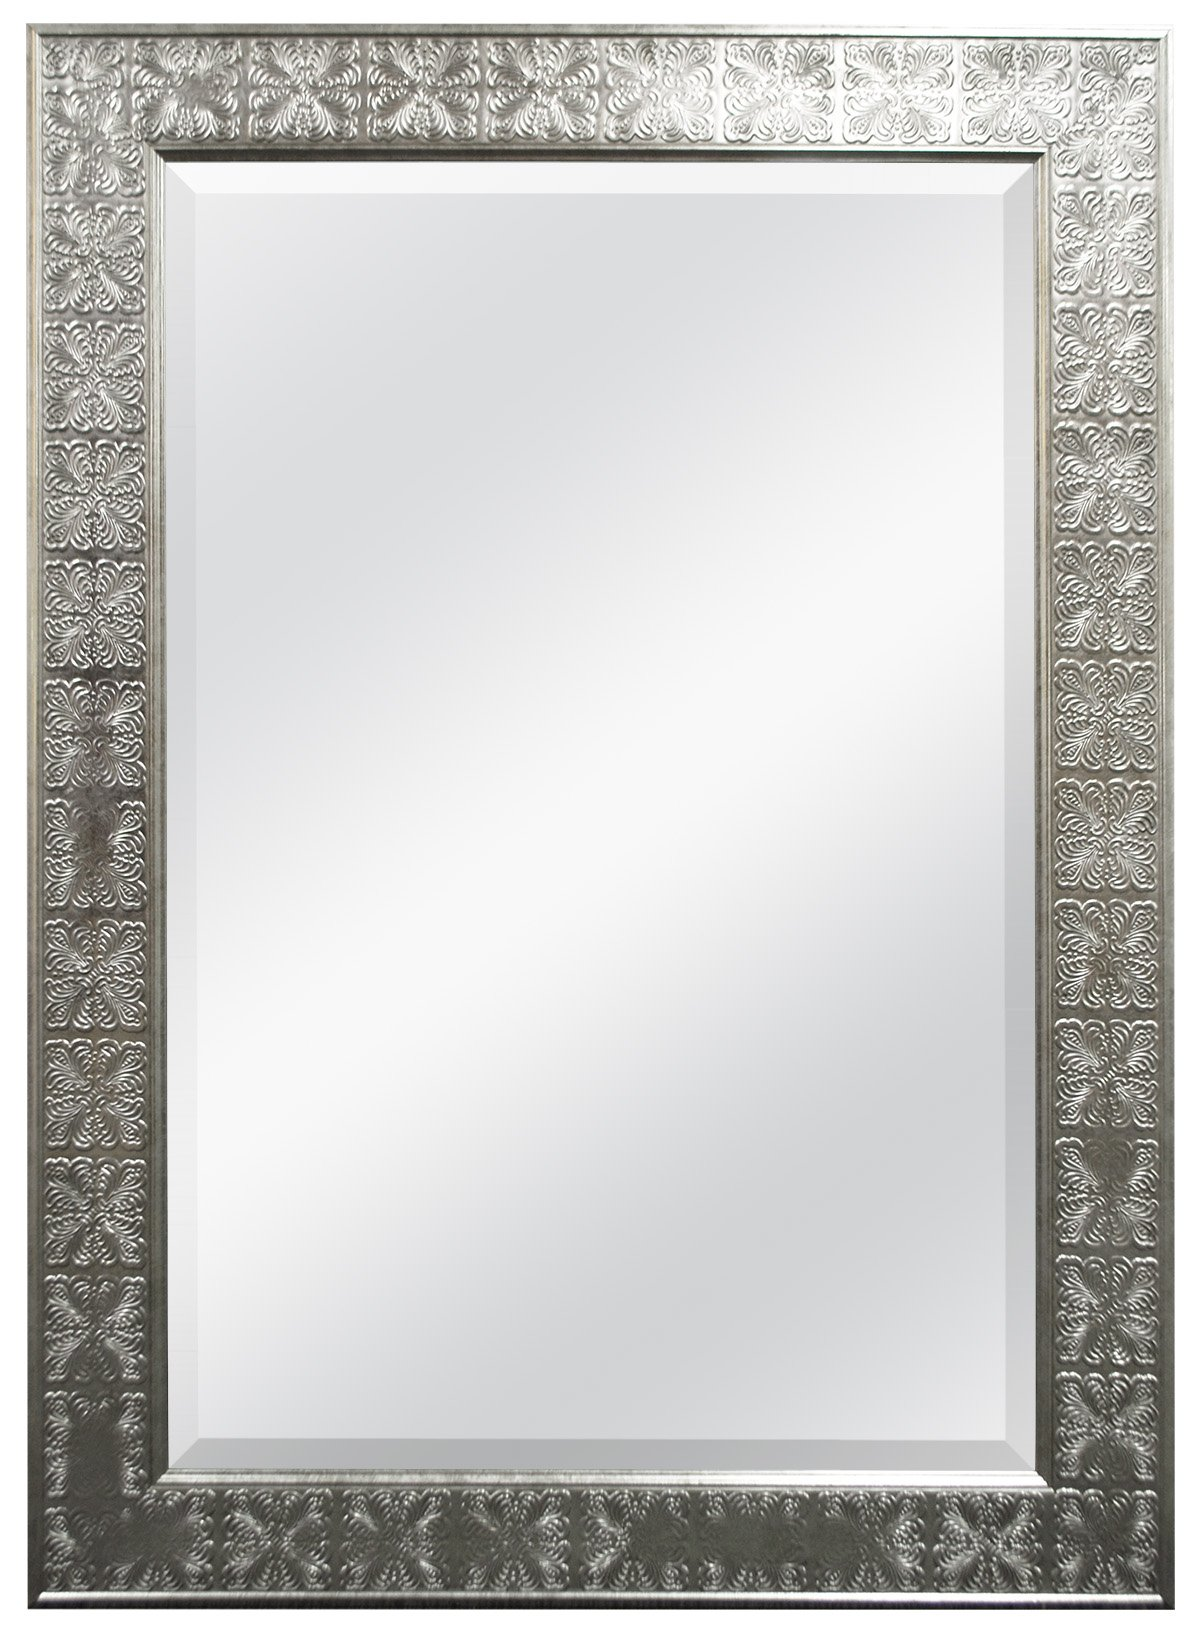 MCS 24x36 Inch Beveled Mirror, 32x44 Inch Overall Size, Champagne (47700) by MCS